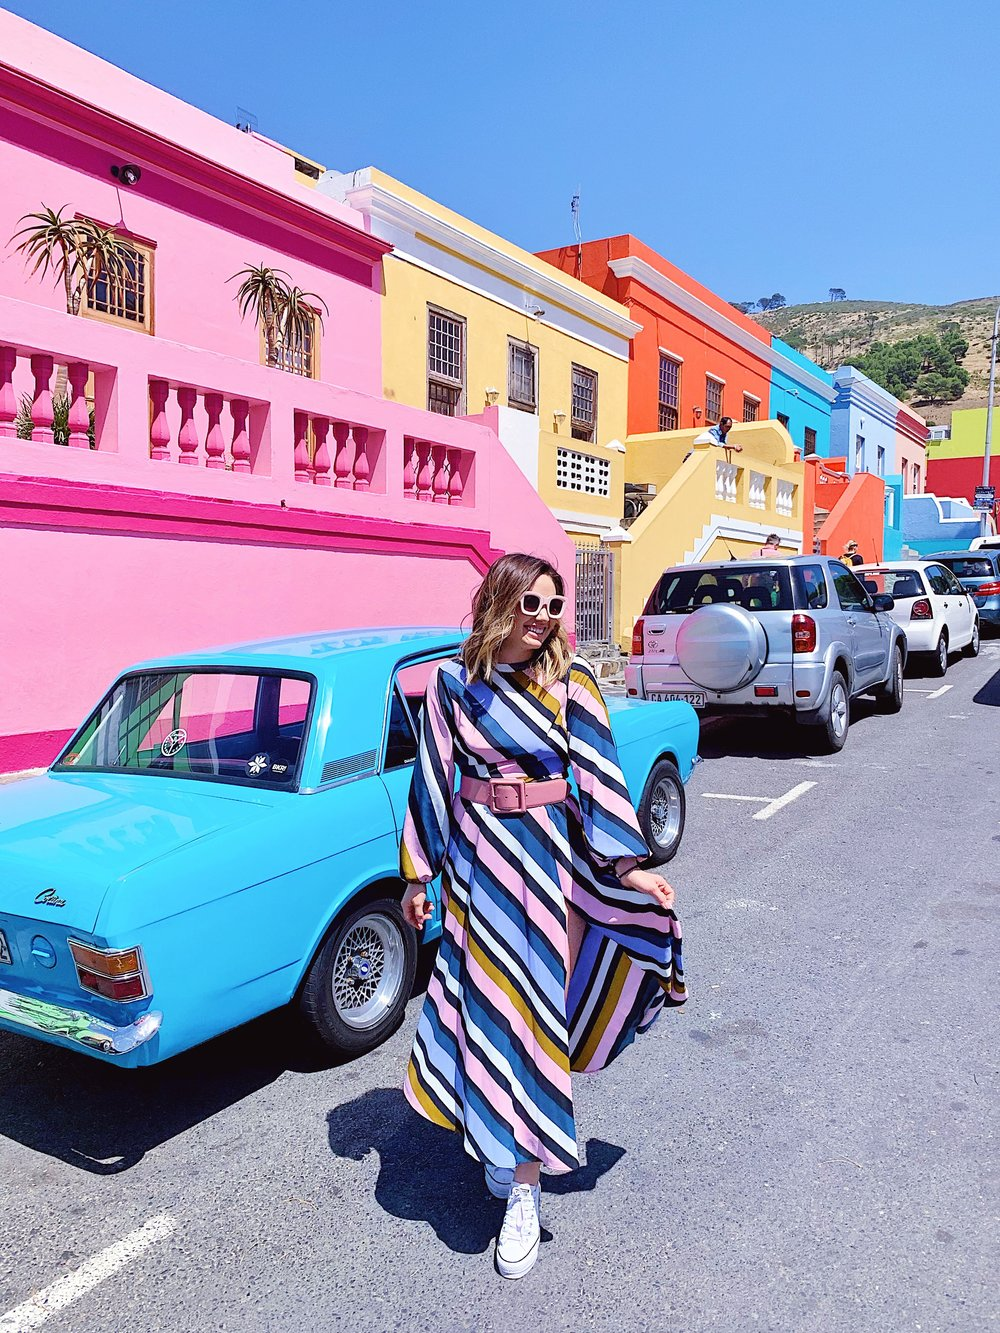 The Street of Color - Another great photo op! Bo-Kaap is a town where there's this street full of colorful houses. Only shame is there's so many cars parked along the street blocking them!